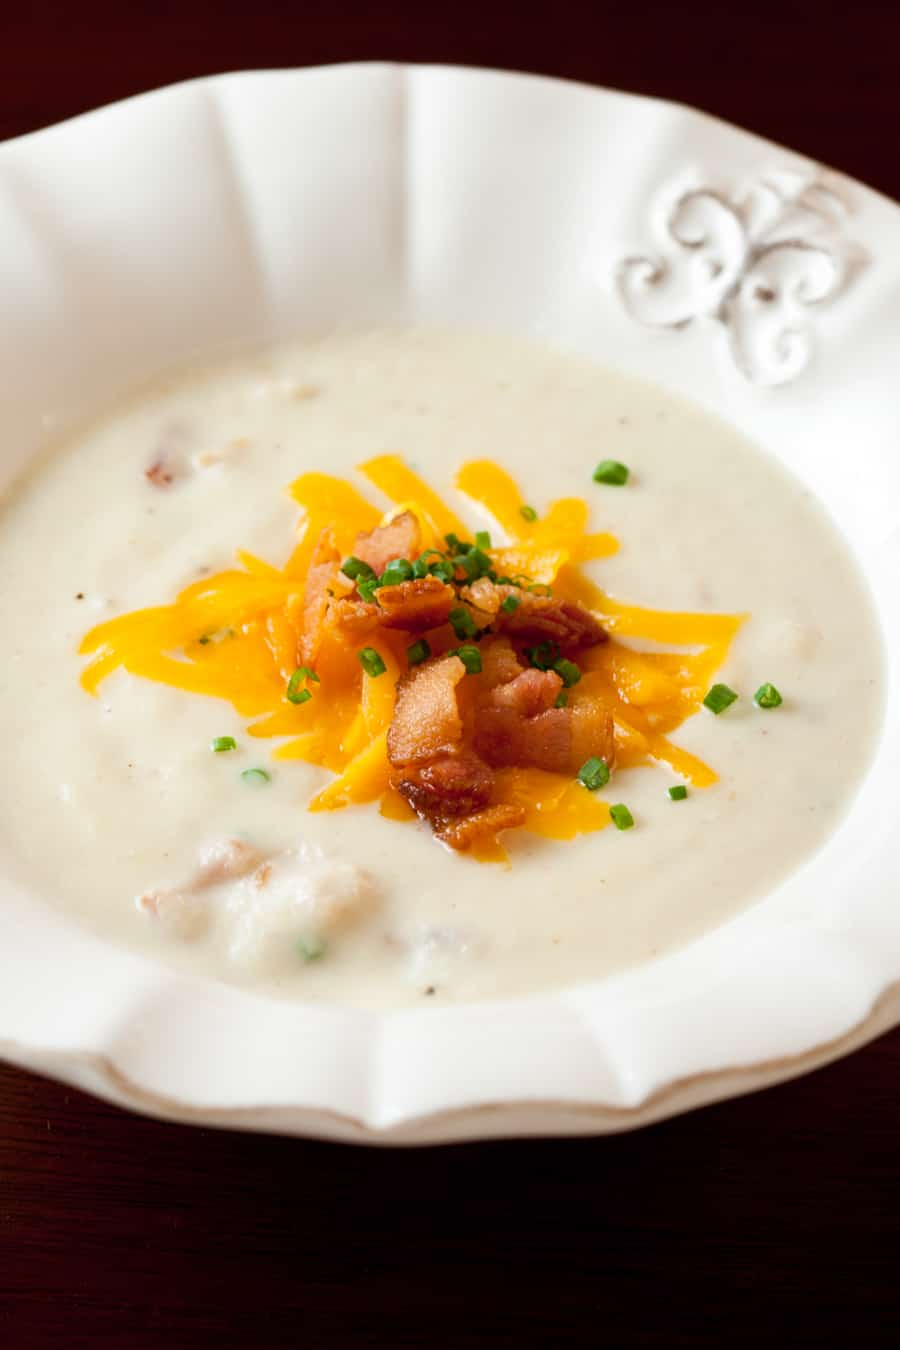 Loaded Cream of Cauliflower Soup with bacon, cheddar, and chives garnish in a white bowl.